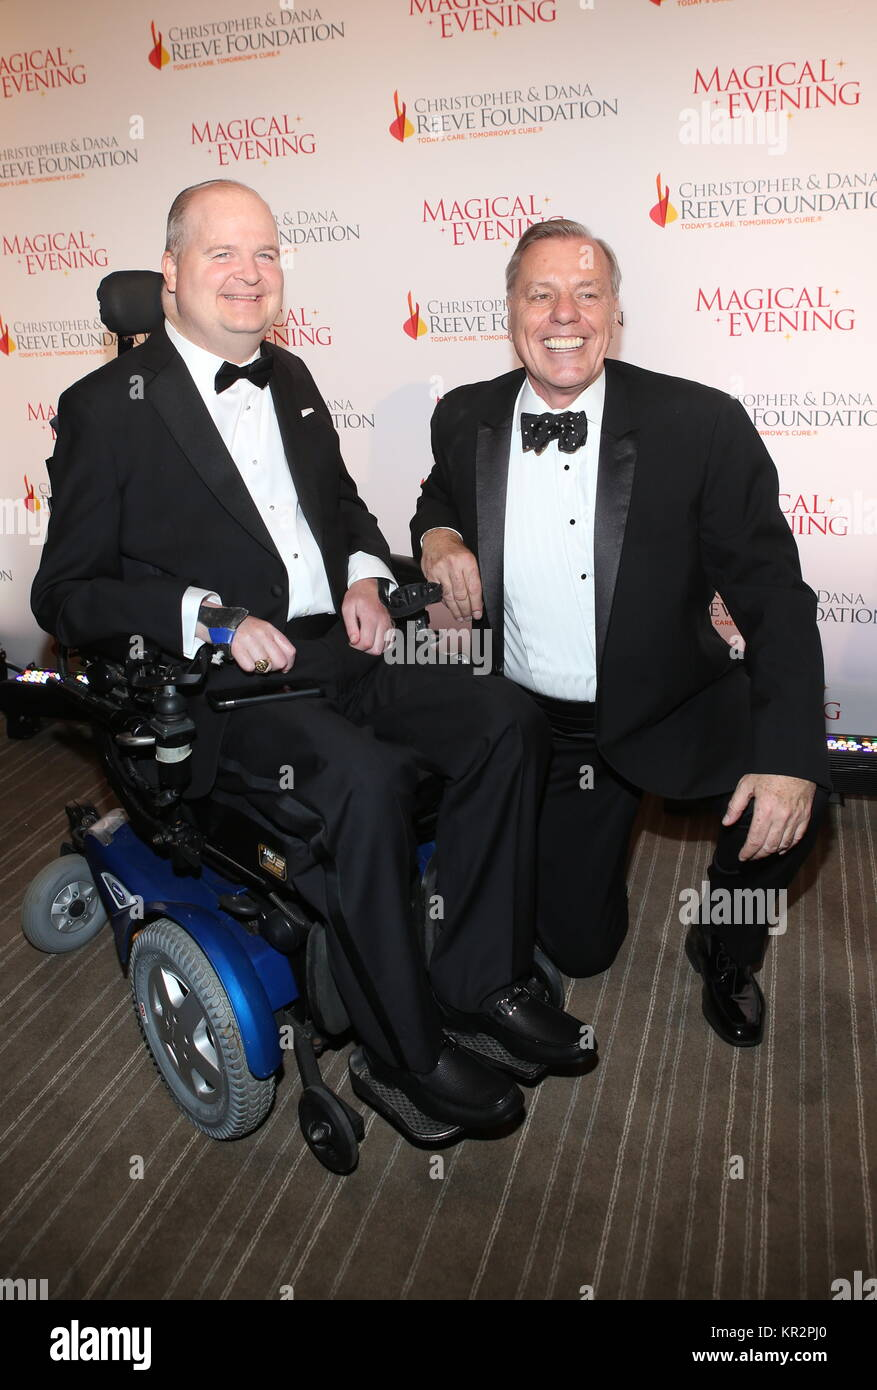 The Christopher & Dana Reeve Foundation Gala at the Conrad - Arrivals  Featuring: Henry G. Stifel III, Peter - Stock Image